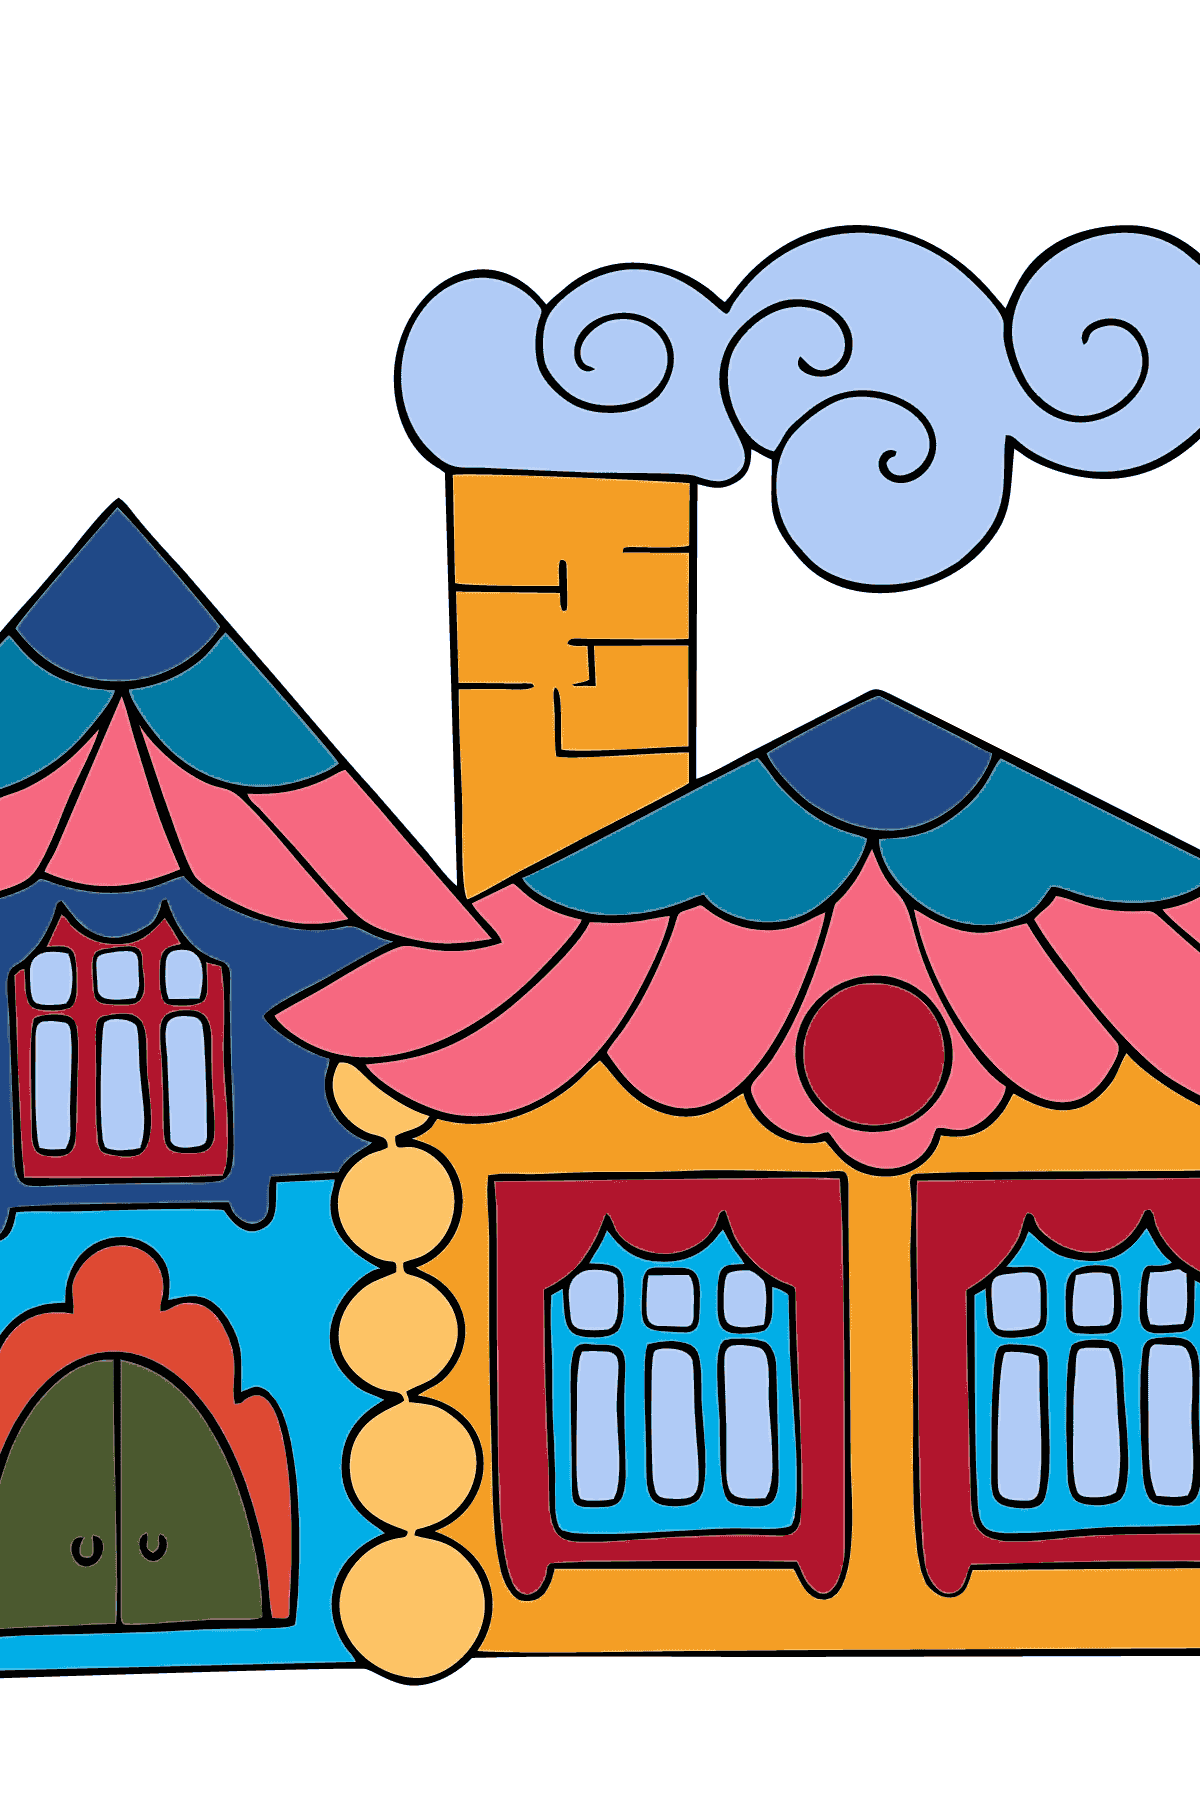 Coloring Page - A House in the Forest for Children